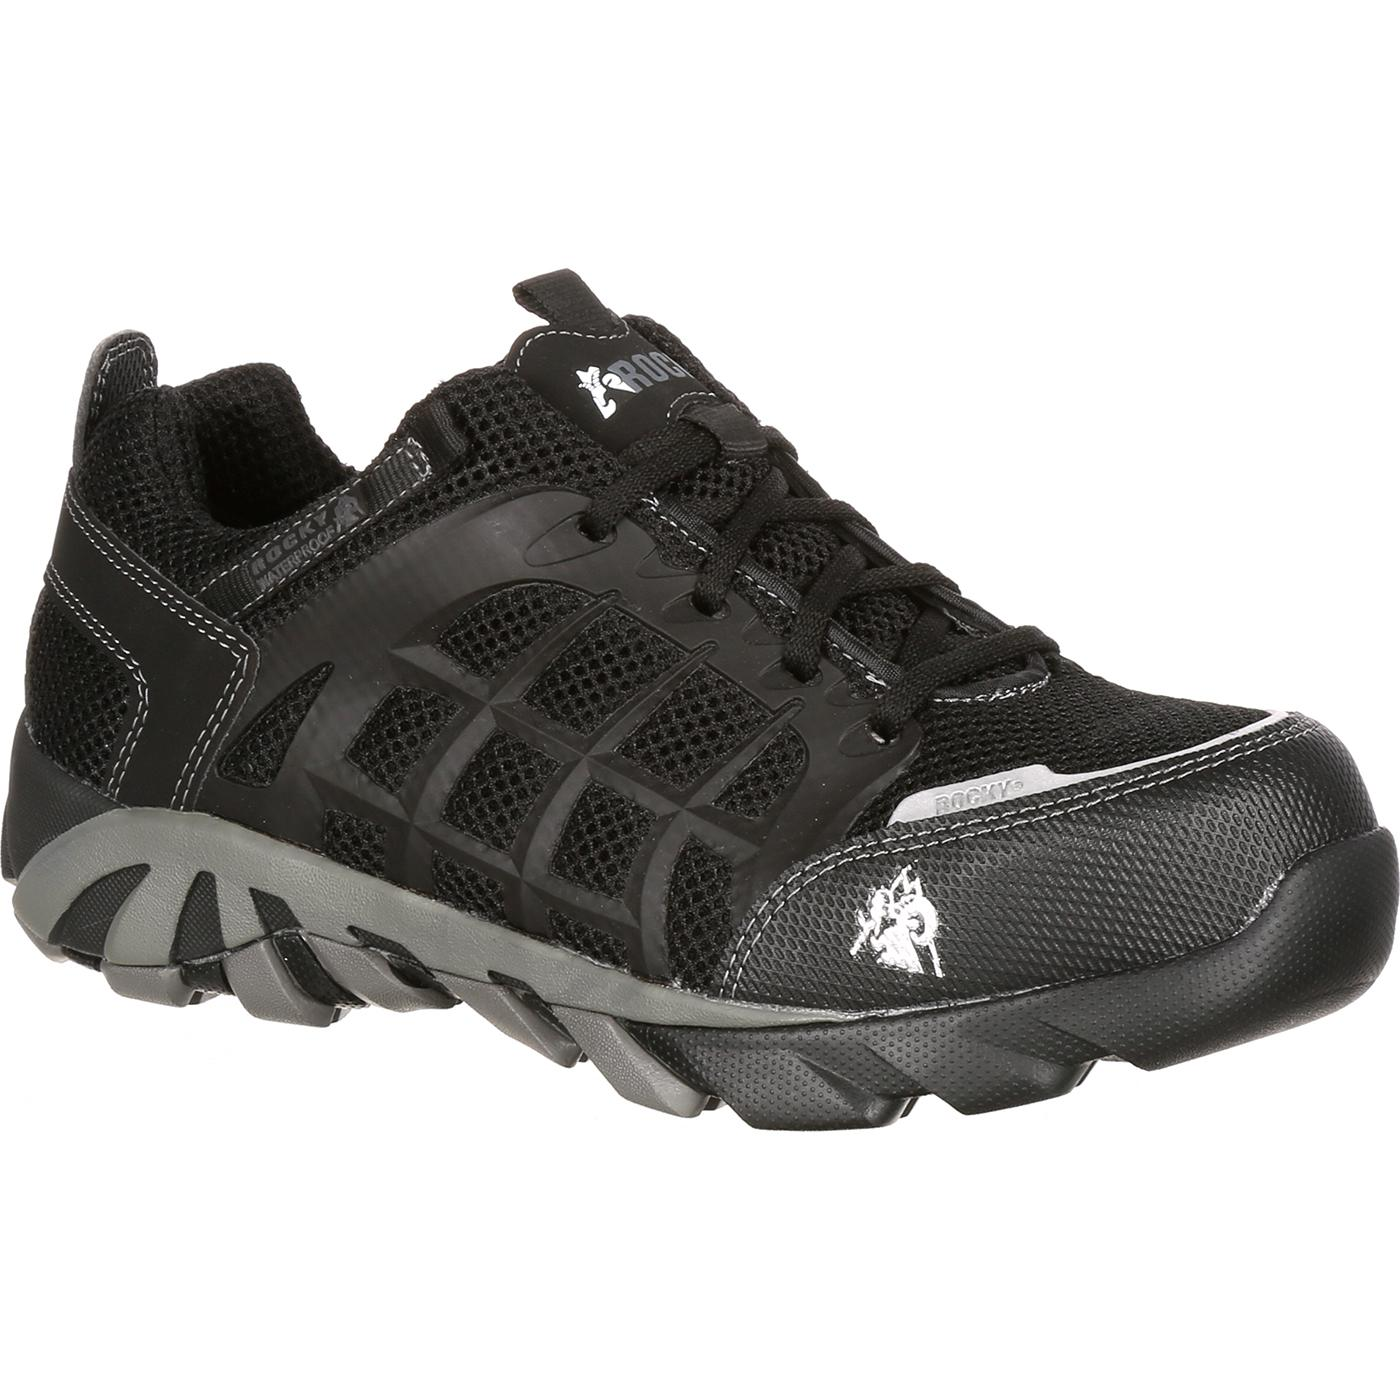 Black Composite Toe Waterproof Sneaker Rocky Trailblade